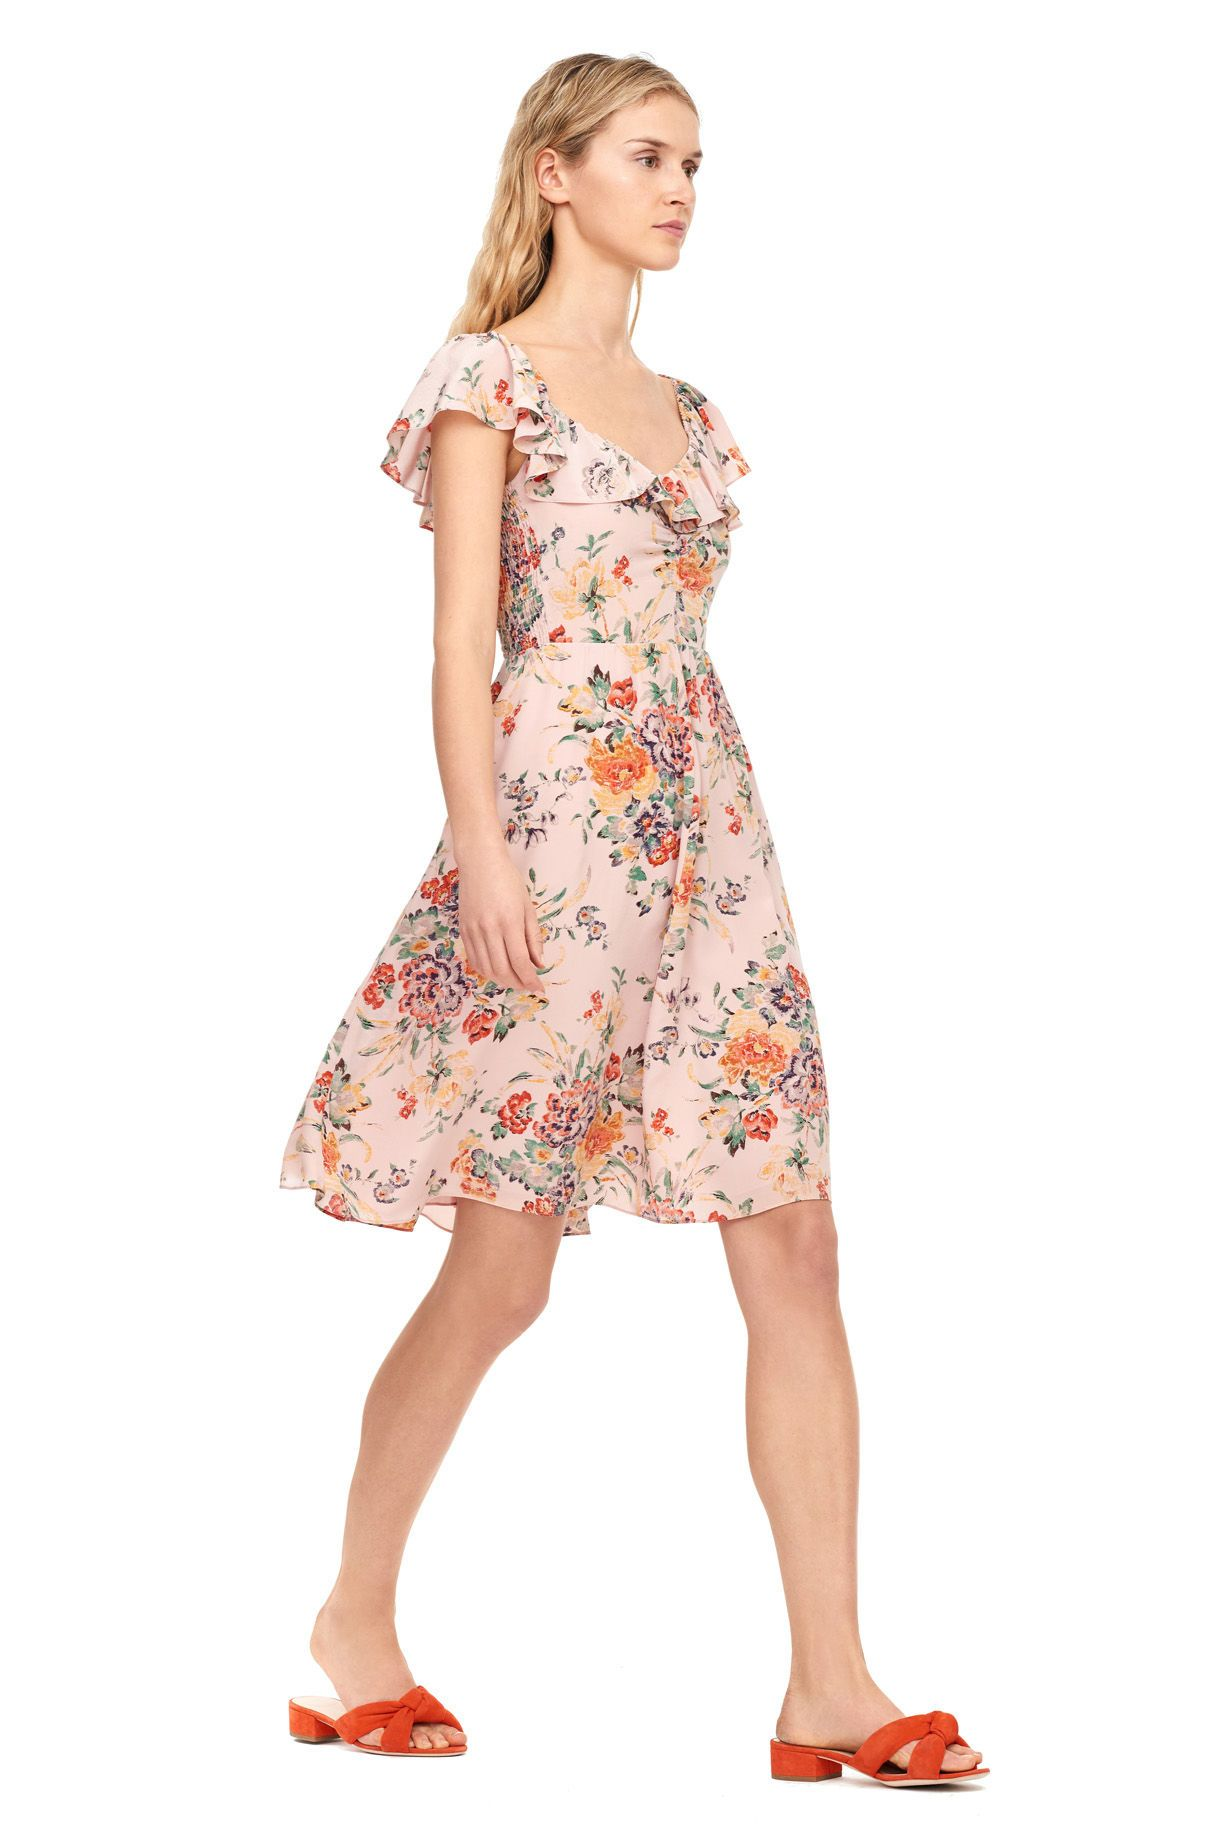 374e2c7865 Spring is all about vintage influences reimagined